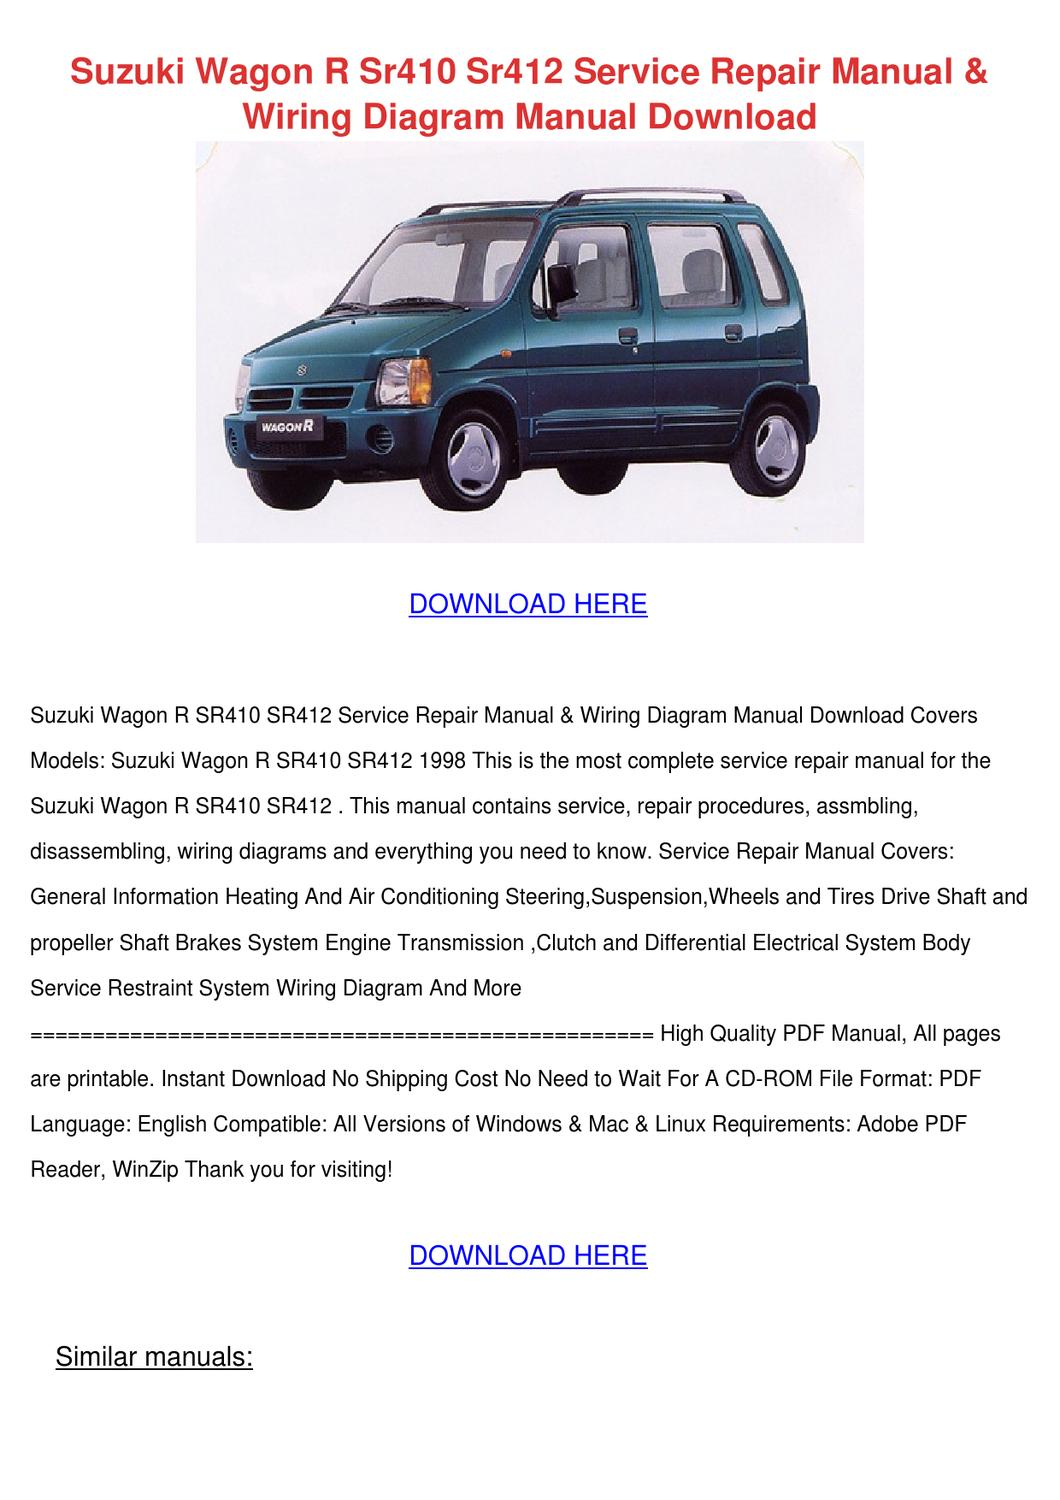 wrg 1669 suzuki wagon r wiring diagram. Black Bedroom Furniture Sets. Home Design Ideas